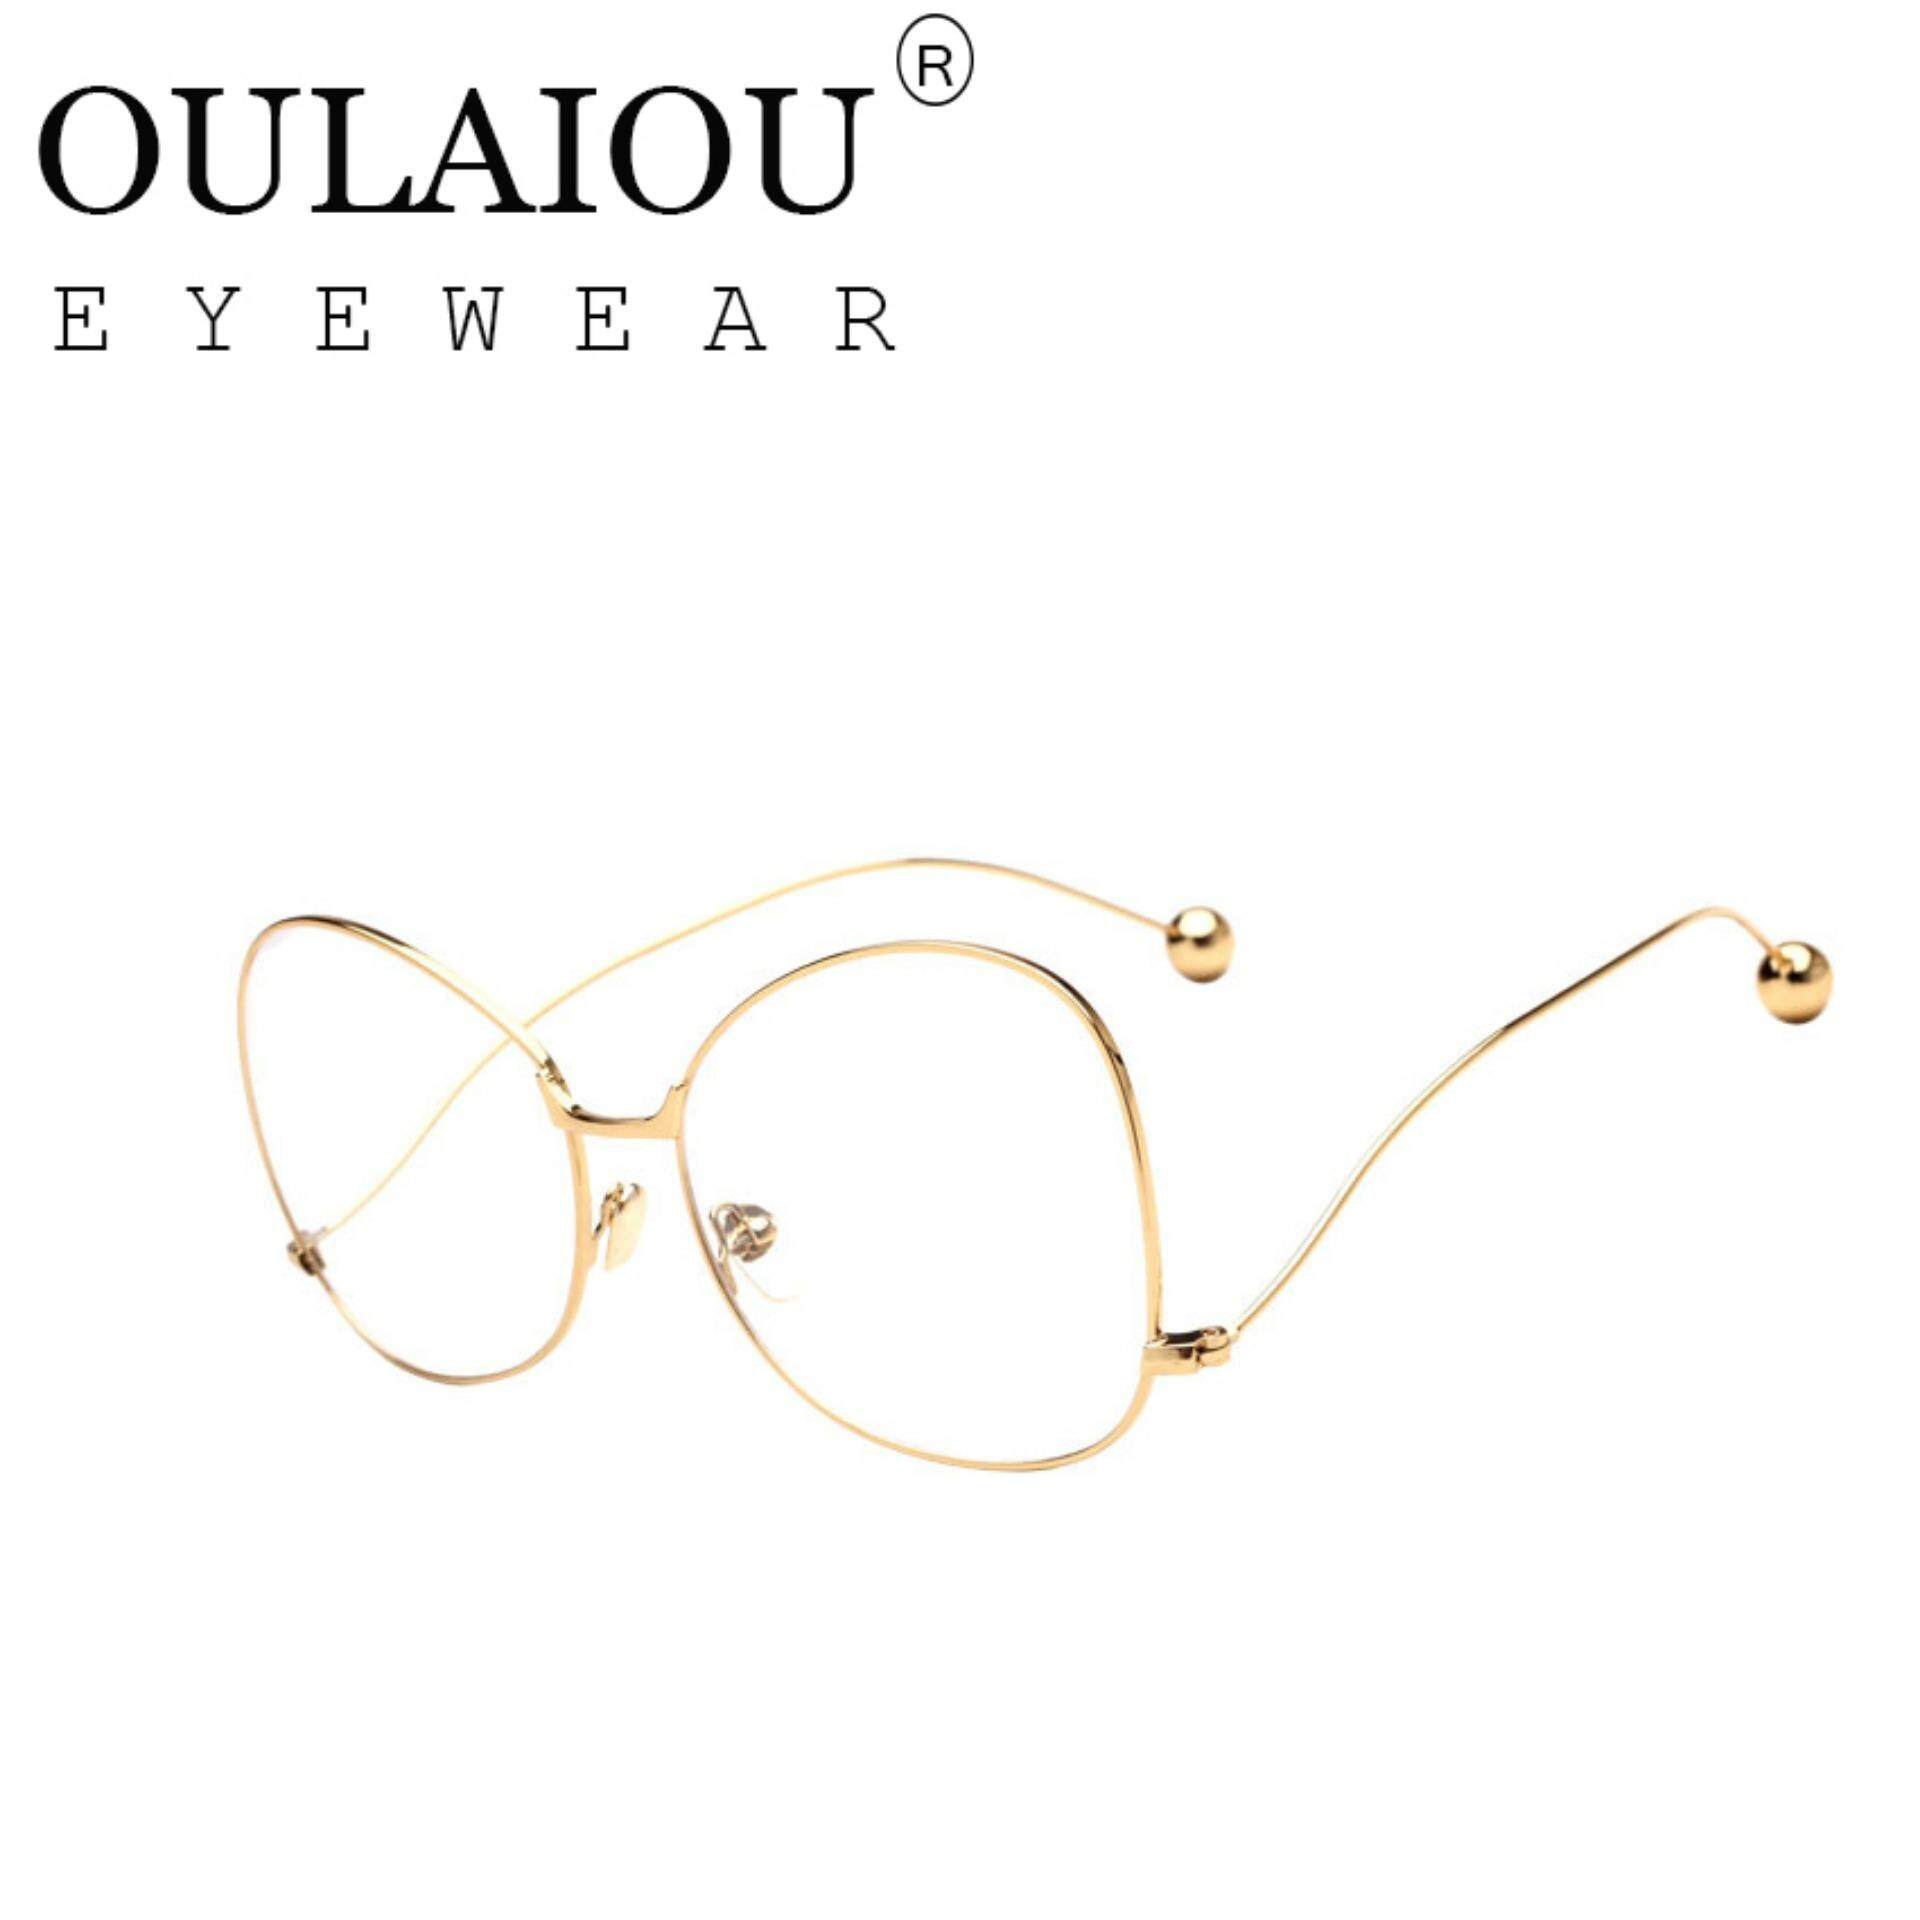 TIANYOU JD Oulaiou Fashion Accessories Anti-fatigue Trendy Eyewear Reading Glasses OJ1528 - intlIDR192000.